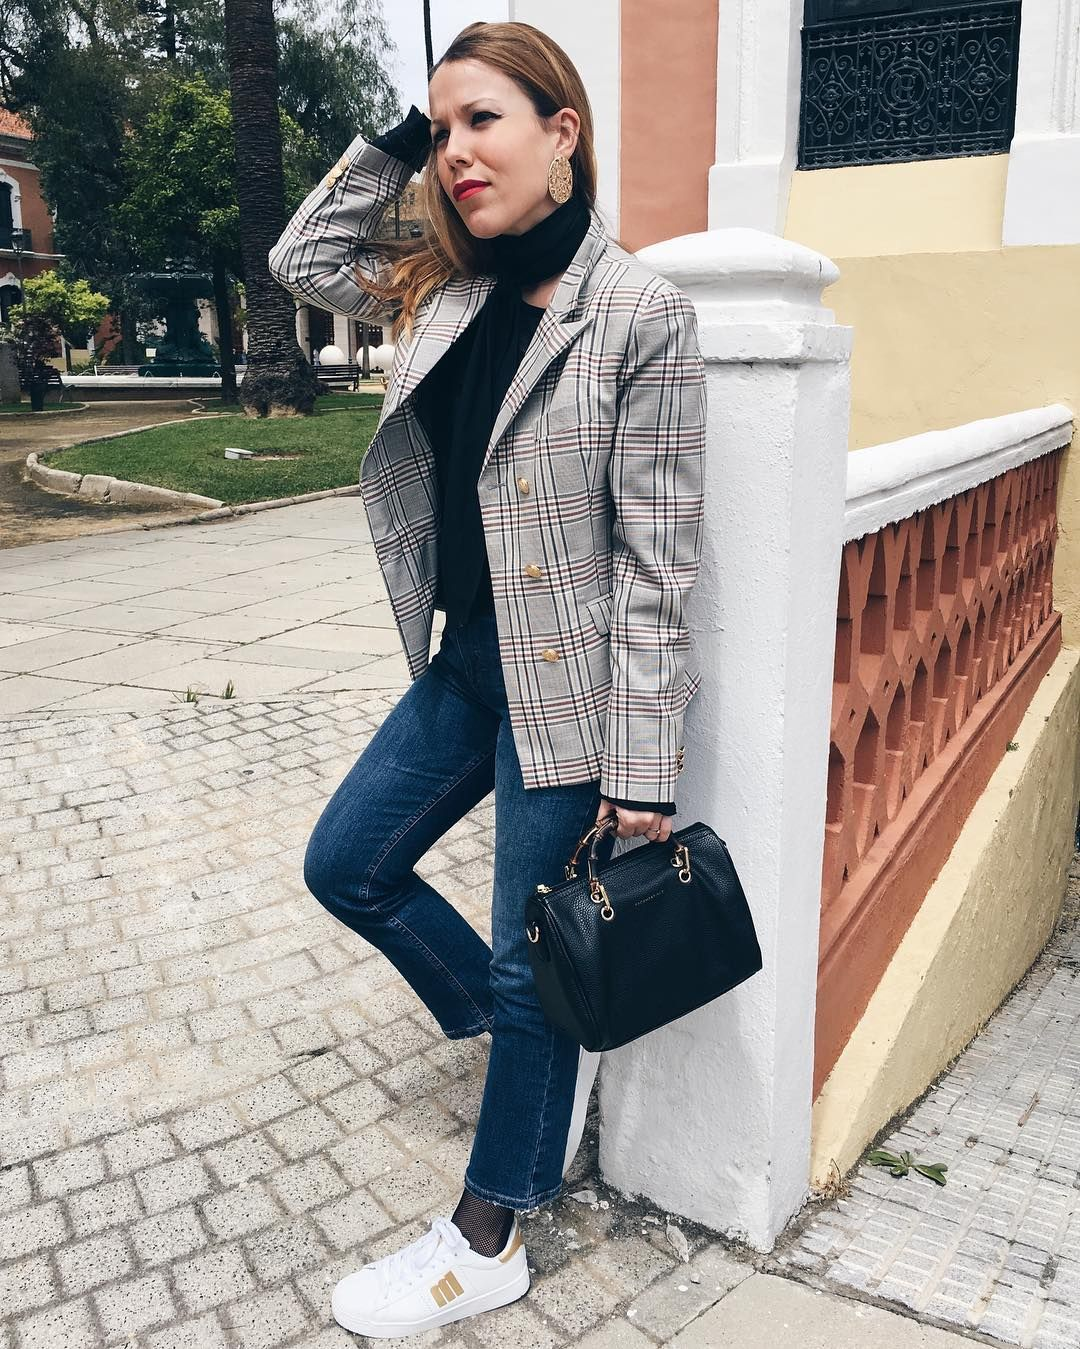 Affordable, made to measure women's clothing! In this picture: Fashionista Blanca. in her Sumissura blazer